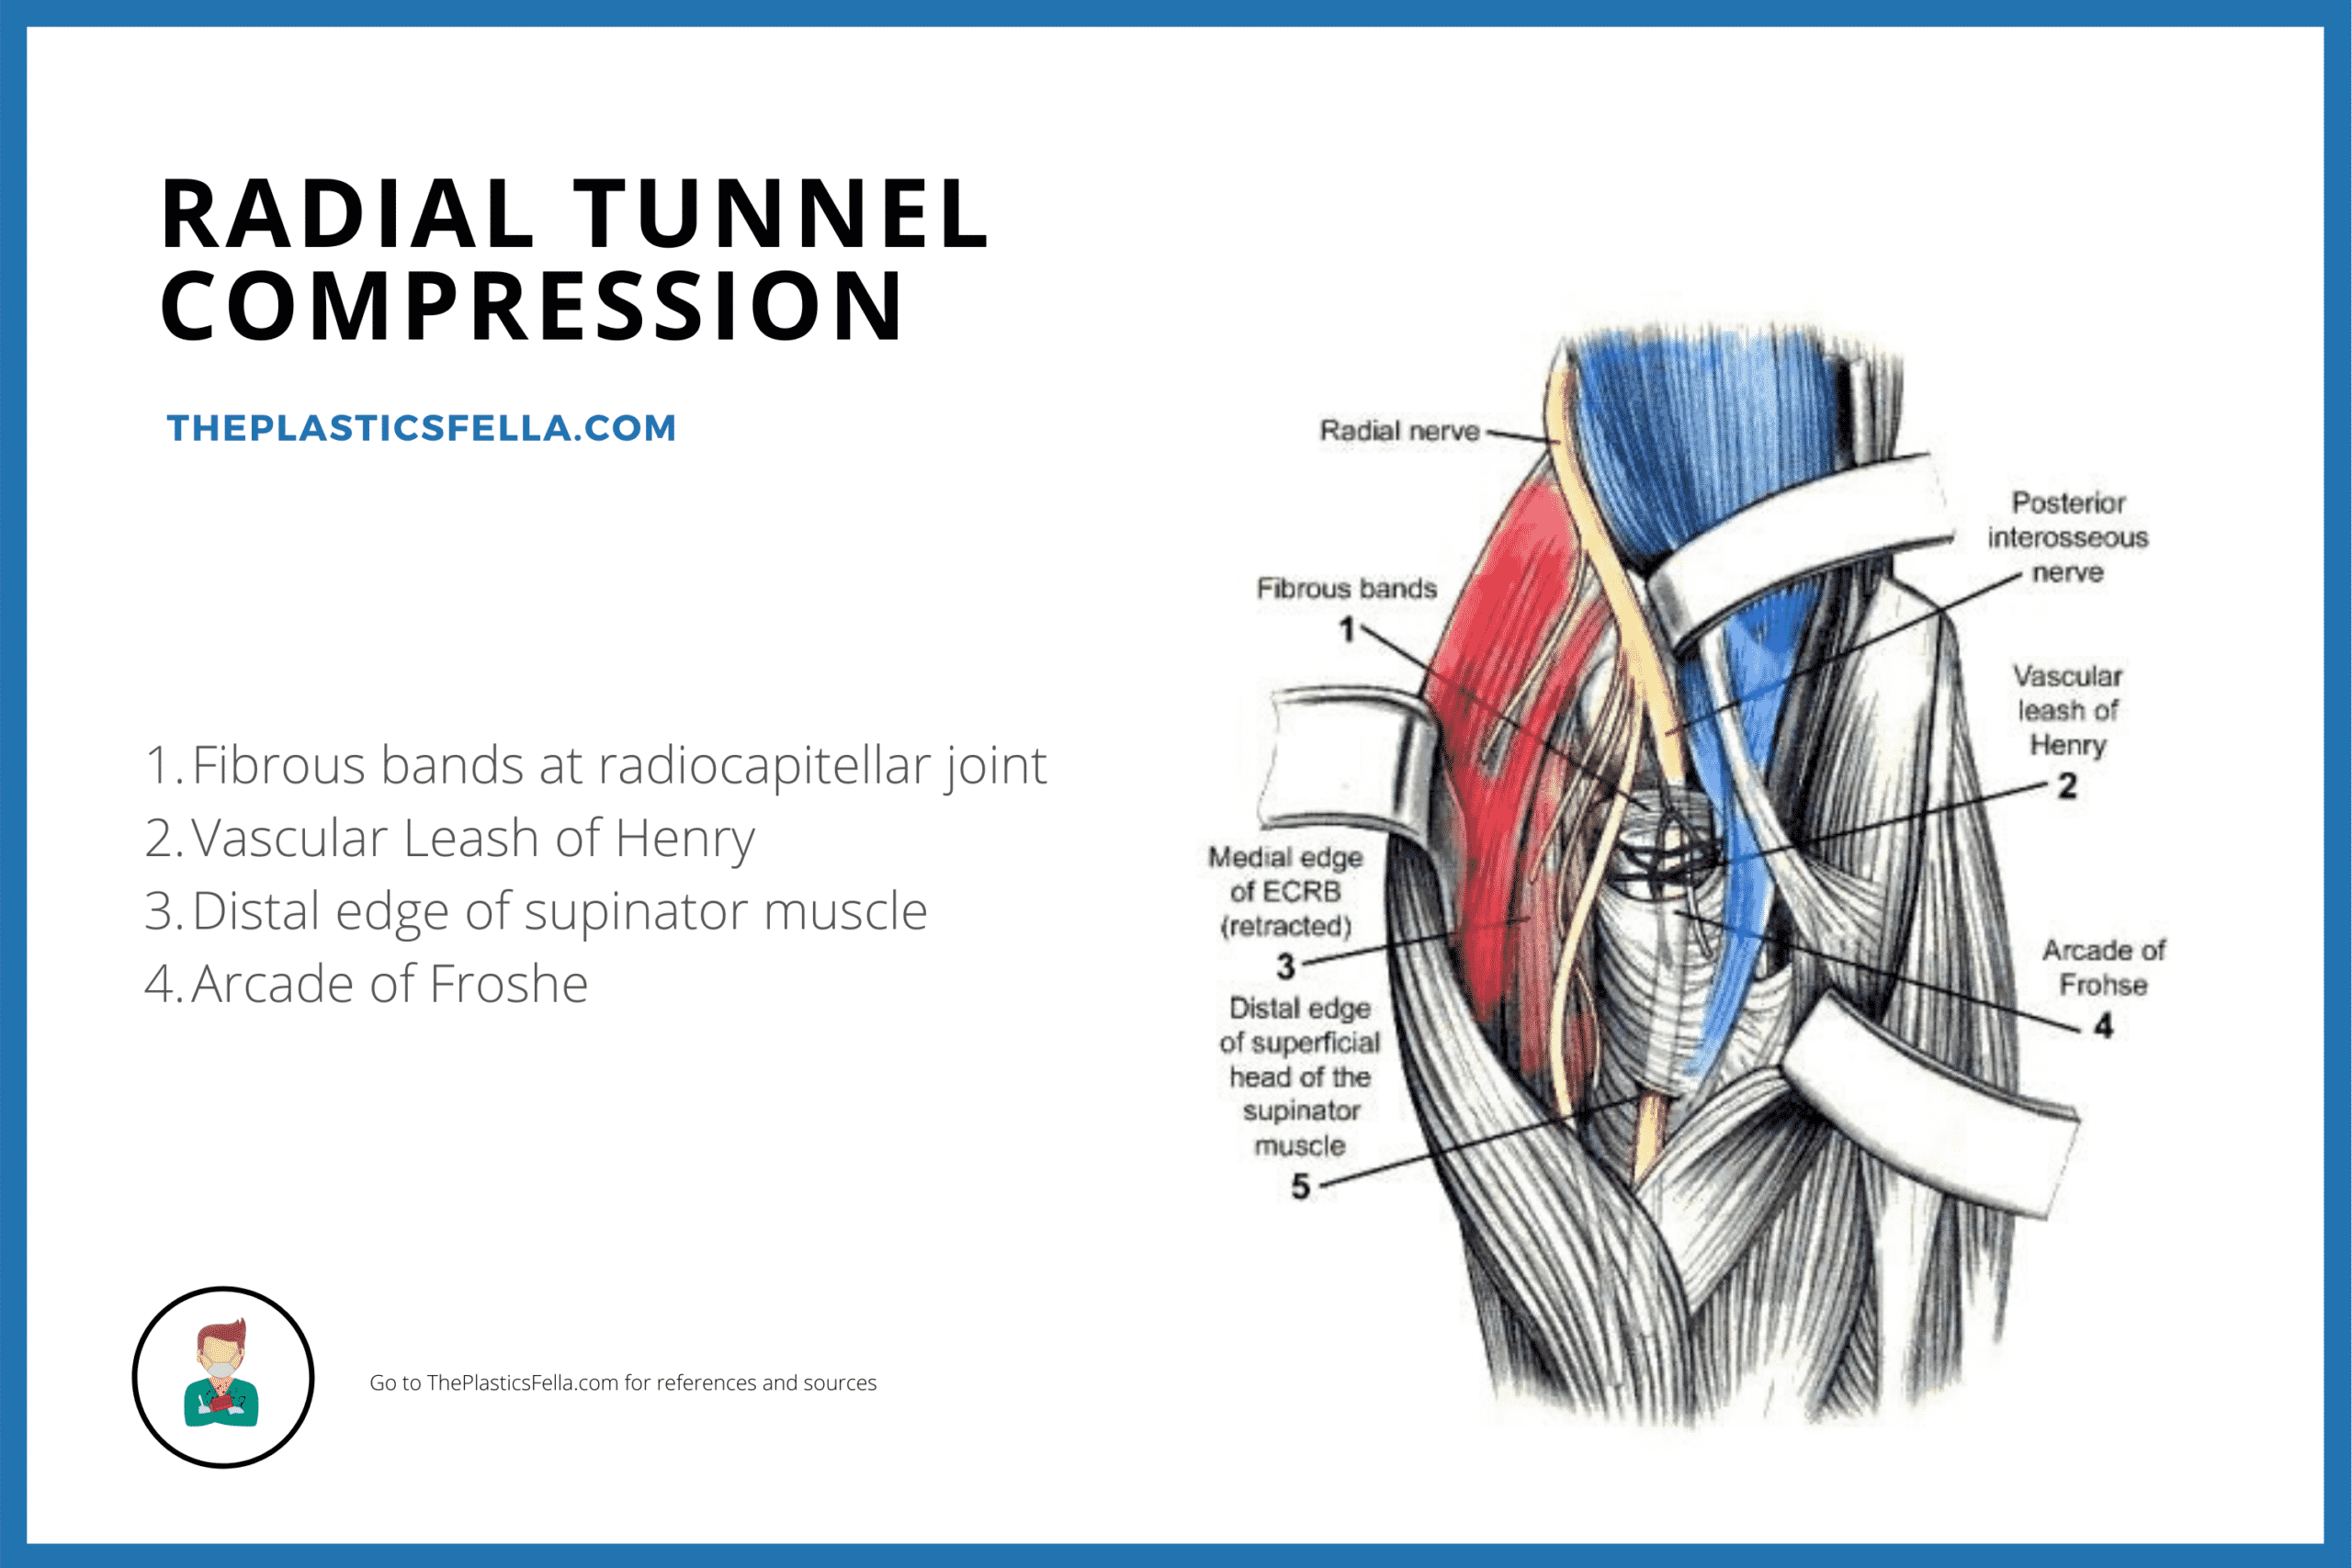 Sites of Radial Tunnel Compression and Entrapment in radial tunnel syndrome and Posterior Interosseous nerve palsy/syndrome.